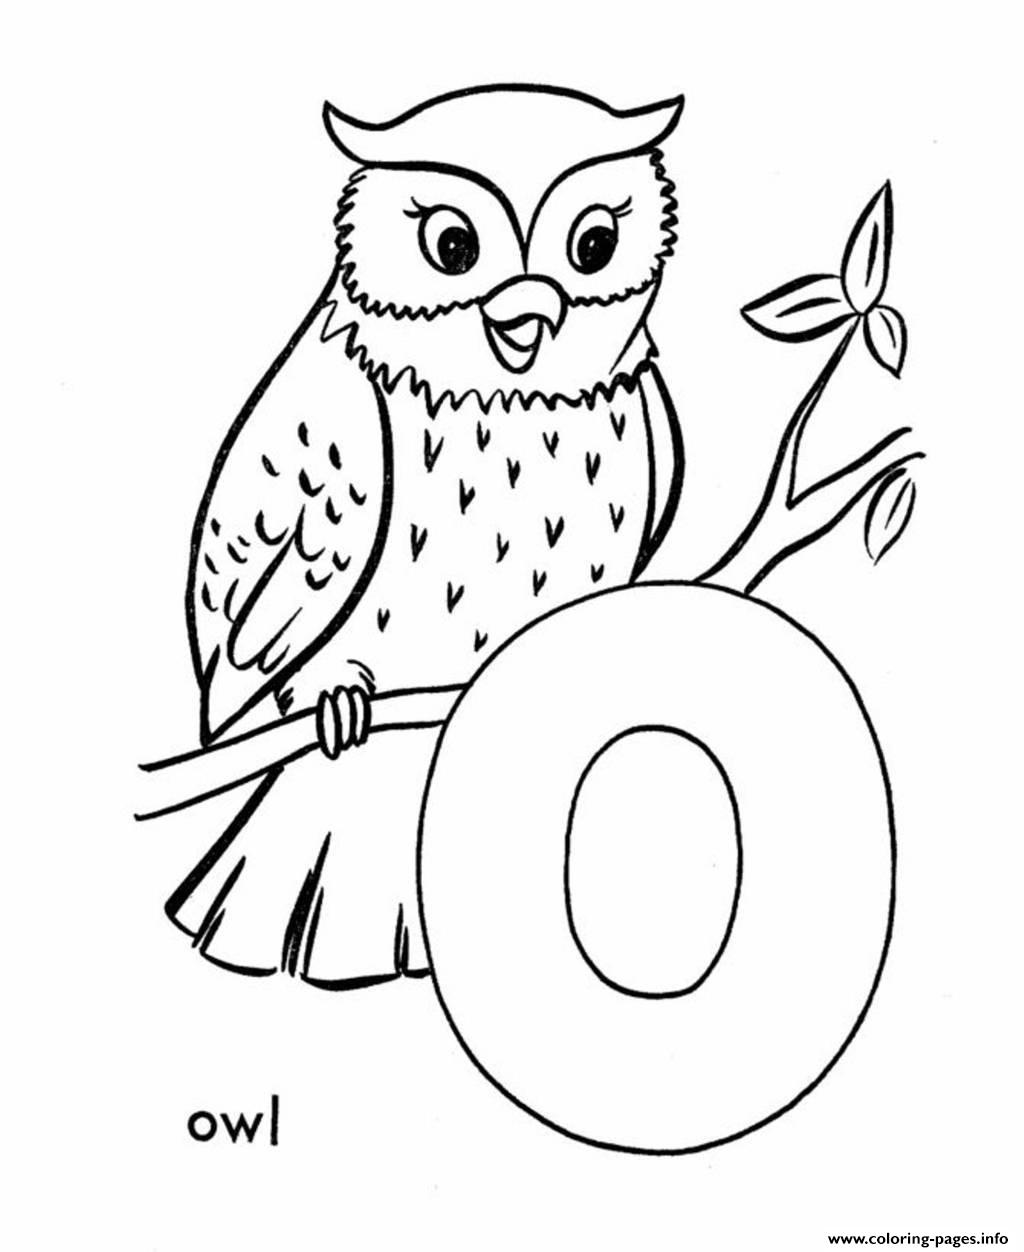 Alphabet S Owlf9e0 Coloring Pages Printable